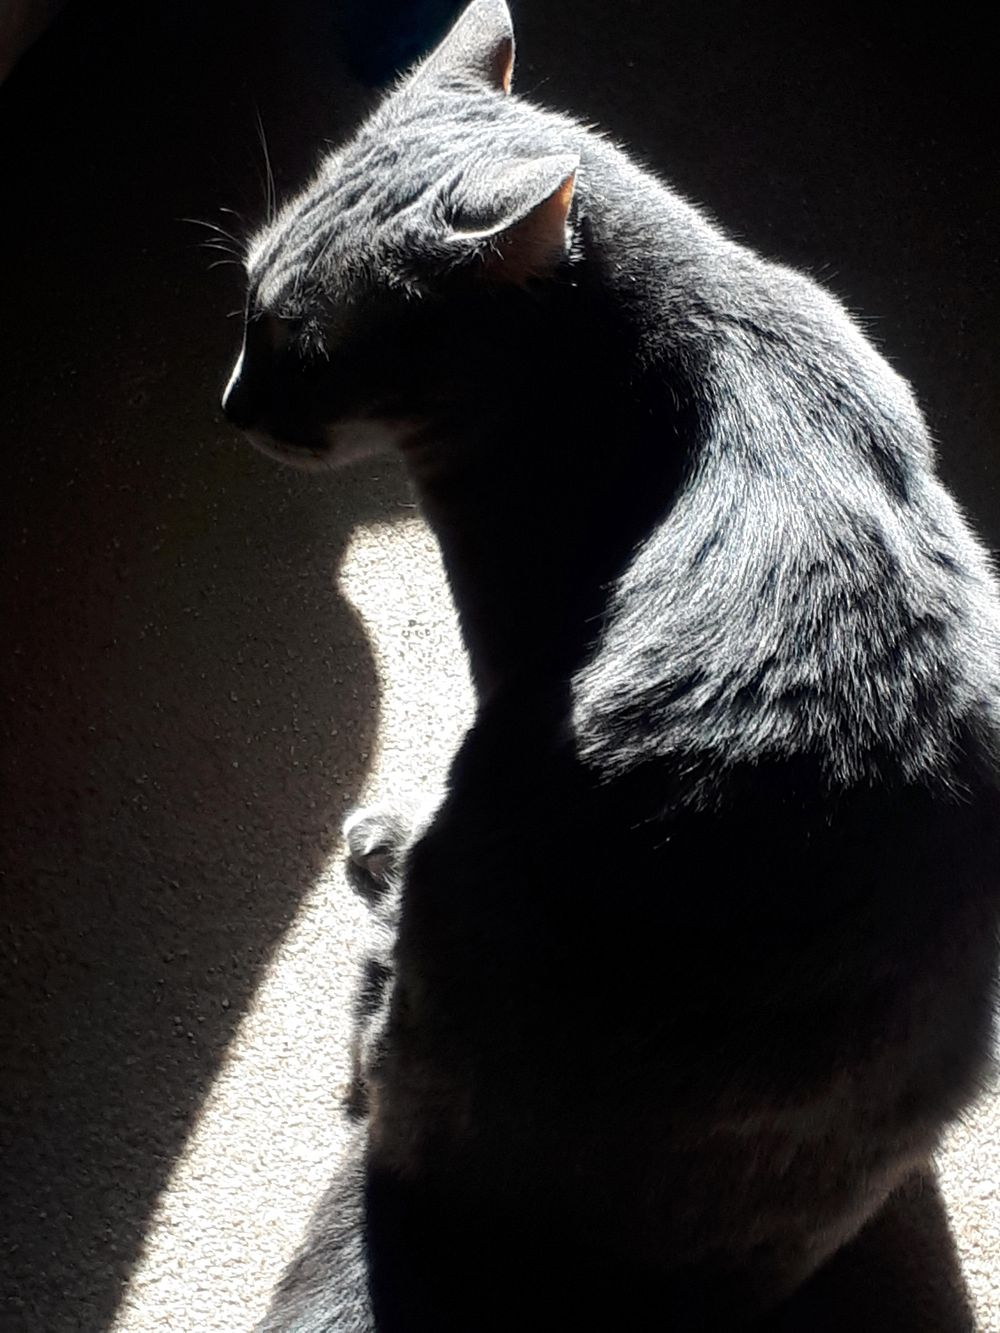 Cat & light as a metaphor - image 4 - student project